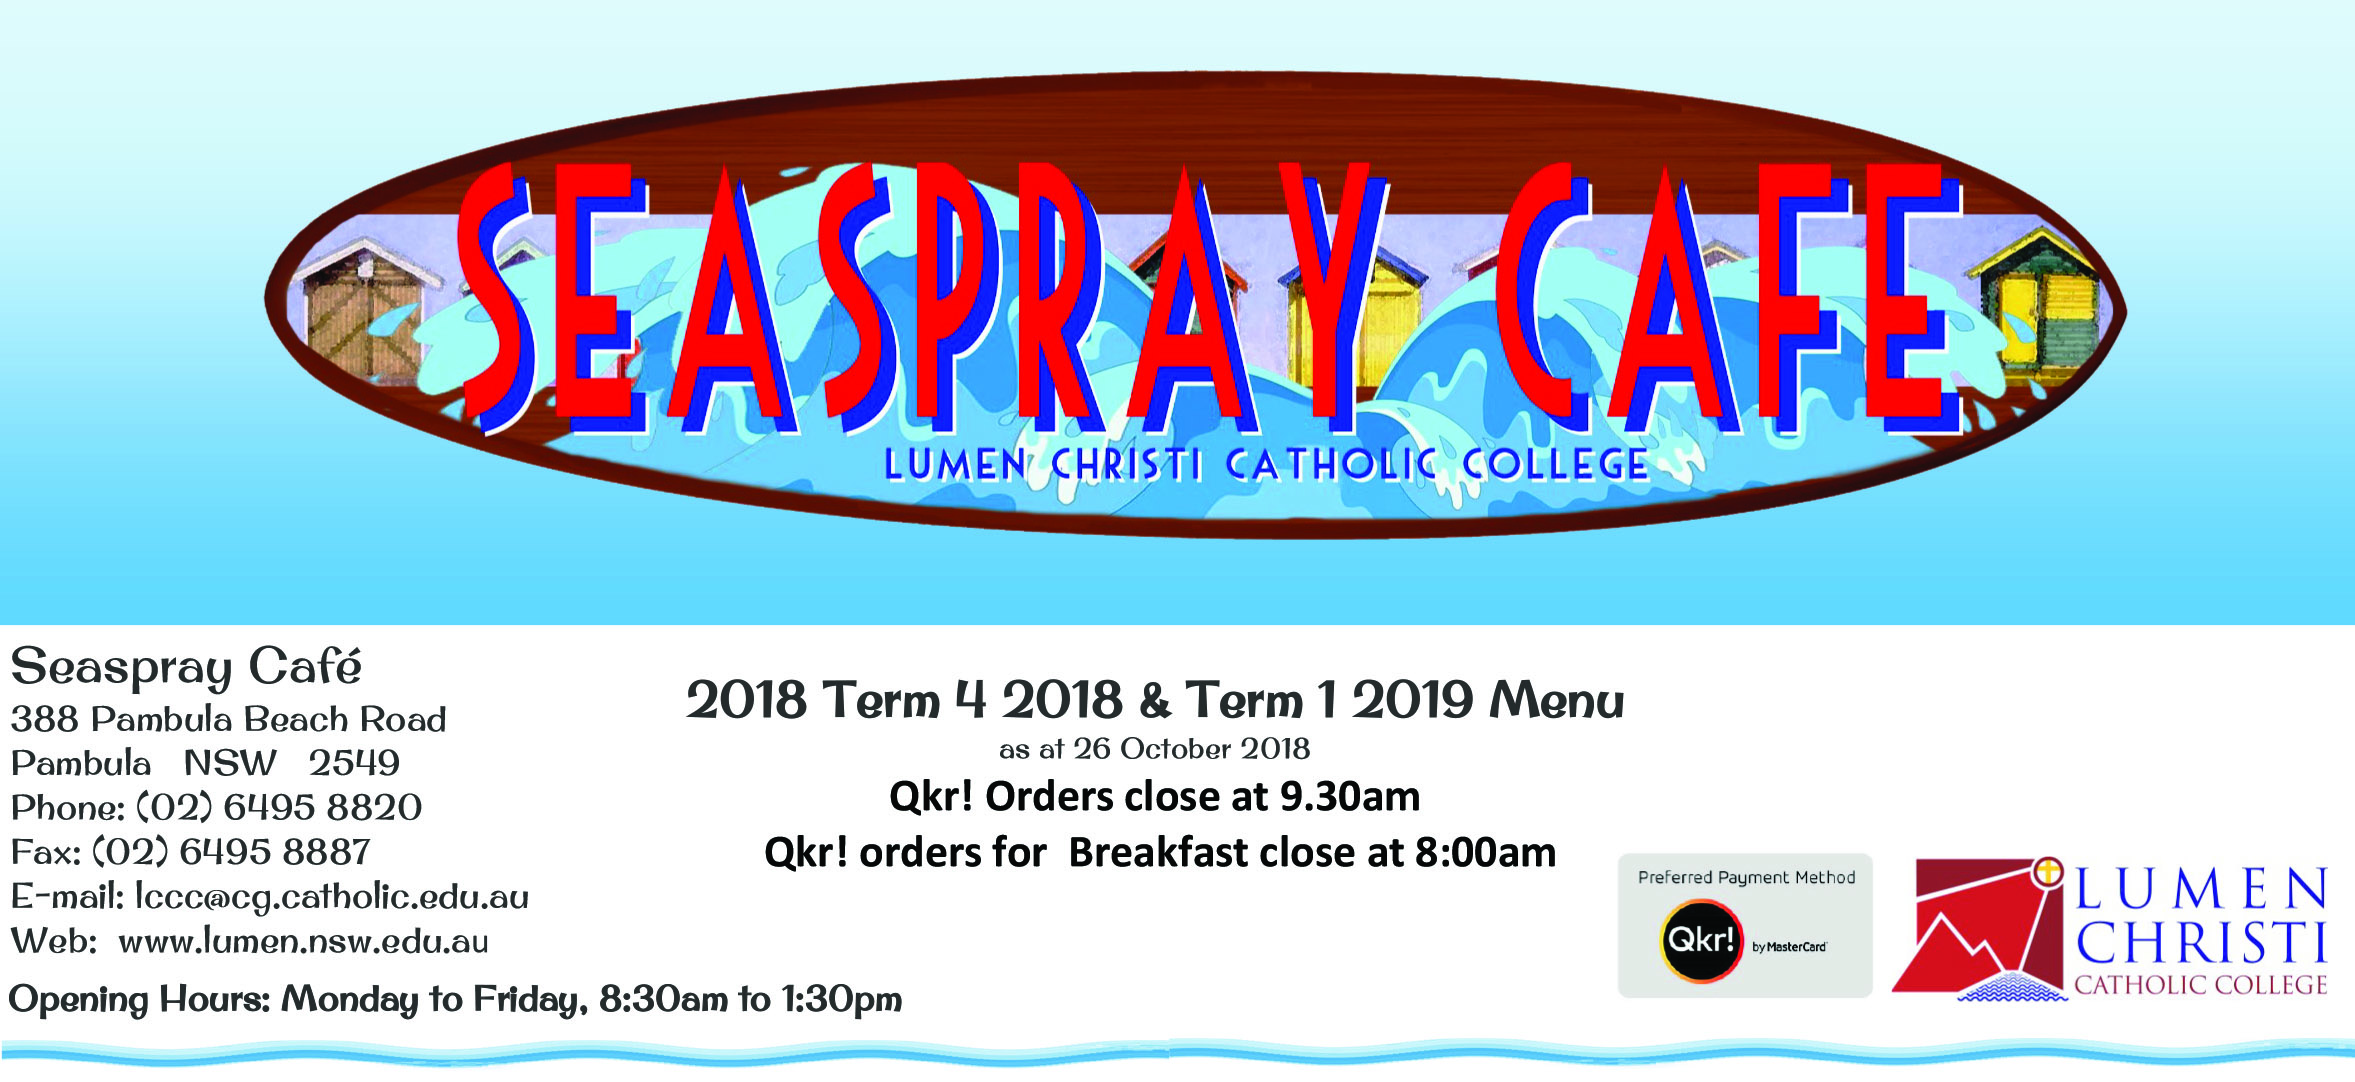 Seaspray Cafe